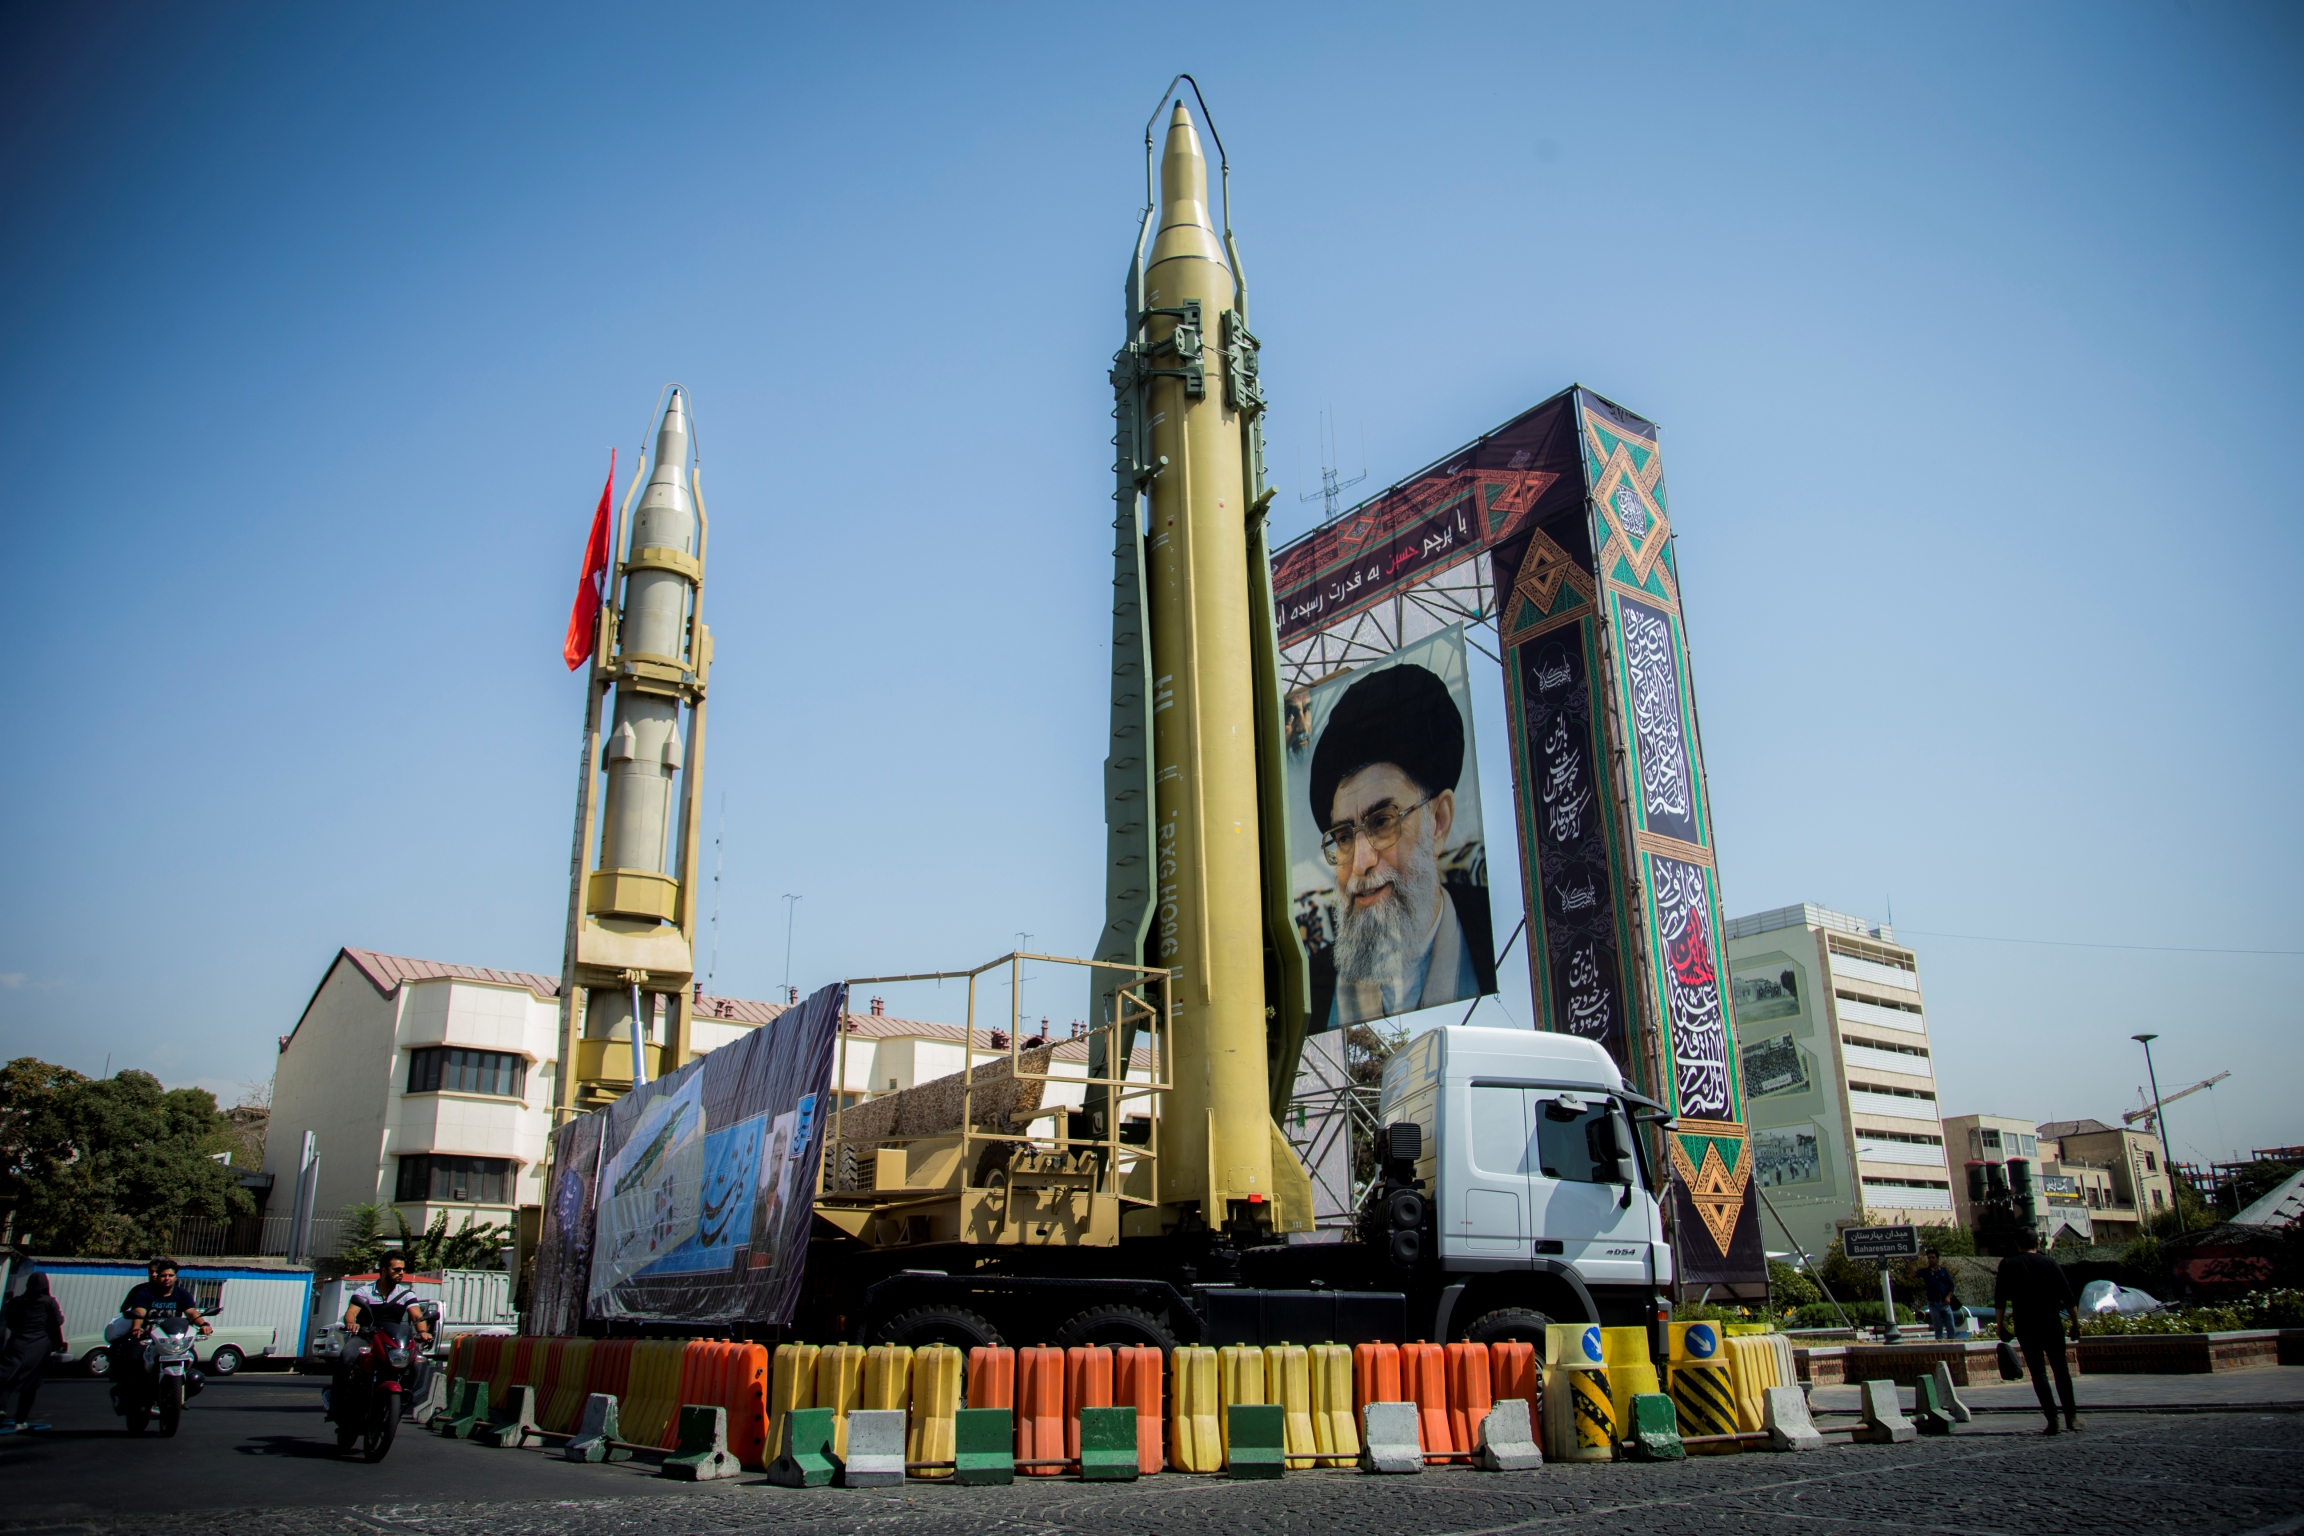 A display in an Tehran shows a portrait of Ayatollah Khamenei and two missiles.